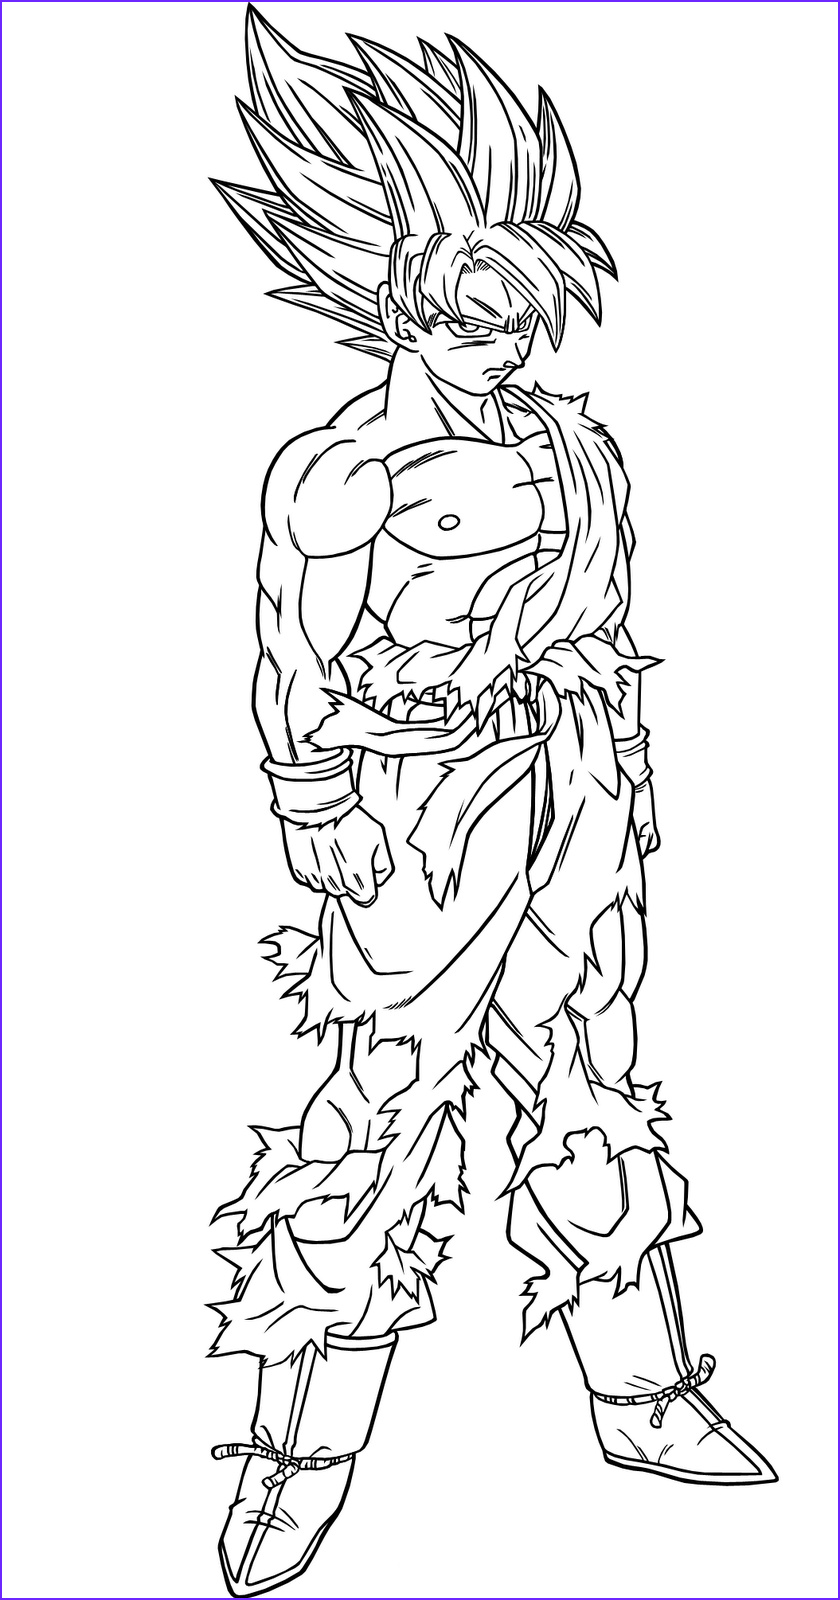 Dragon Ball Z Coloring Beautiful Photography Amazing Dragon Ball Z Coloring Pages for Kids Boys and